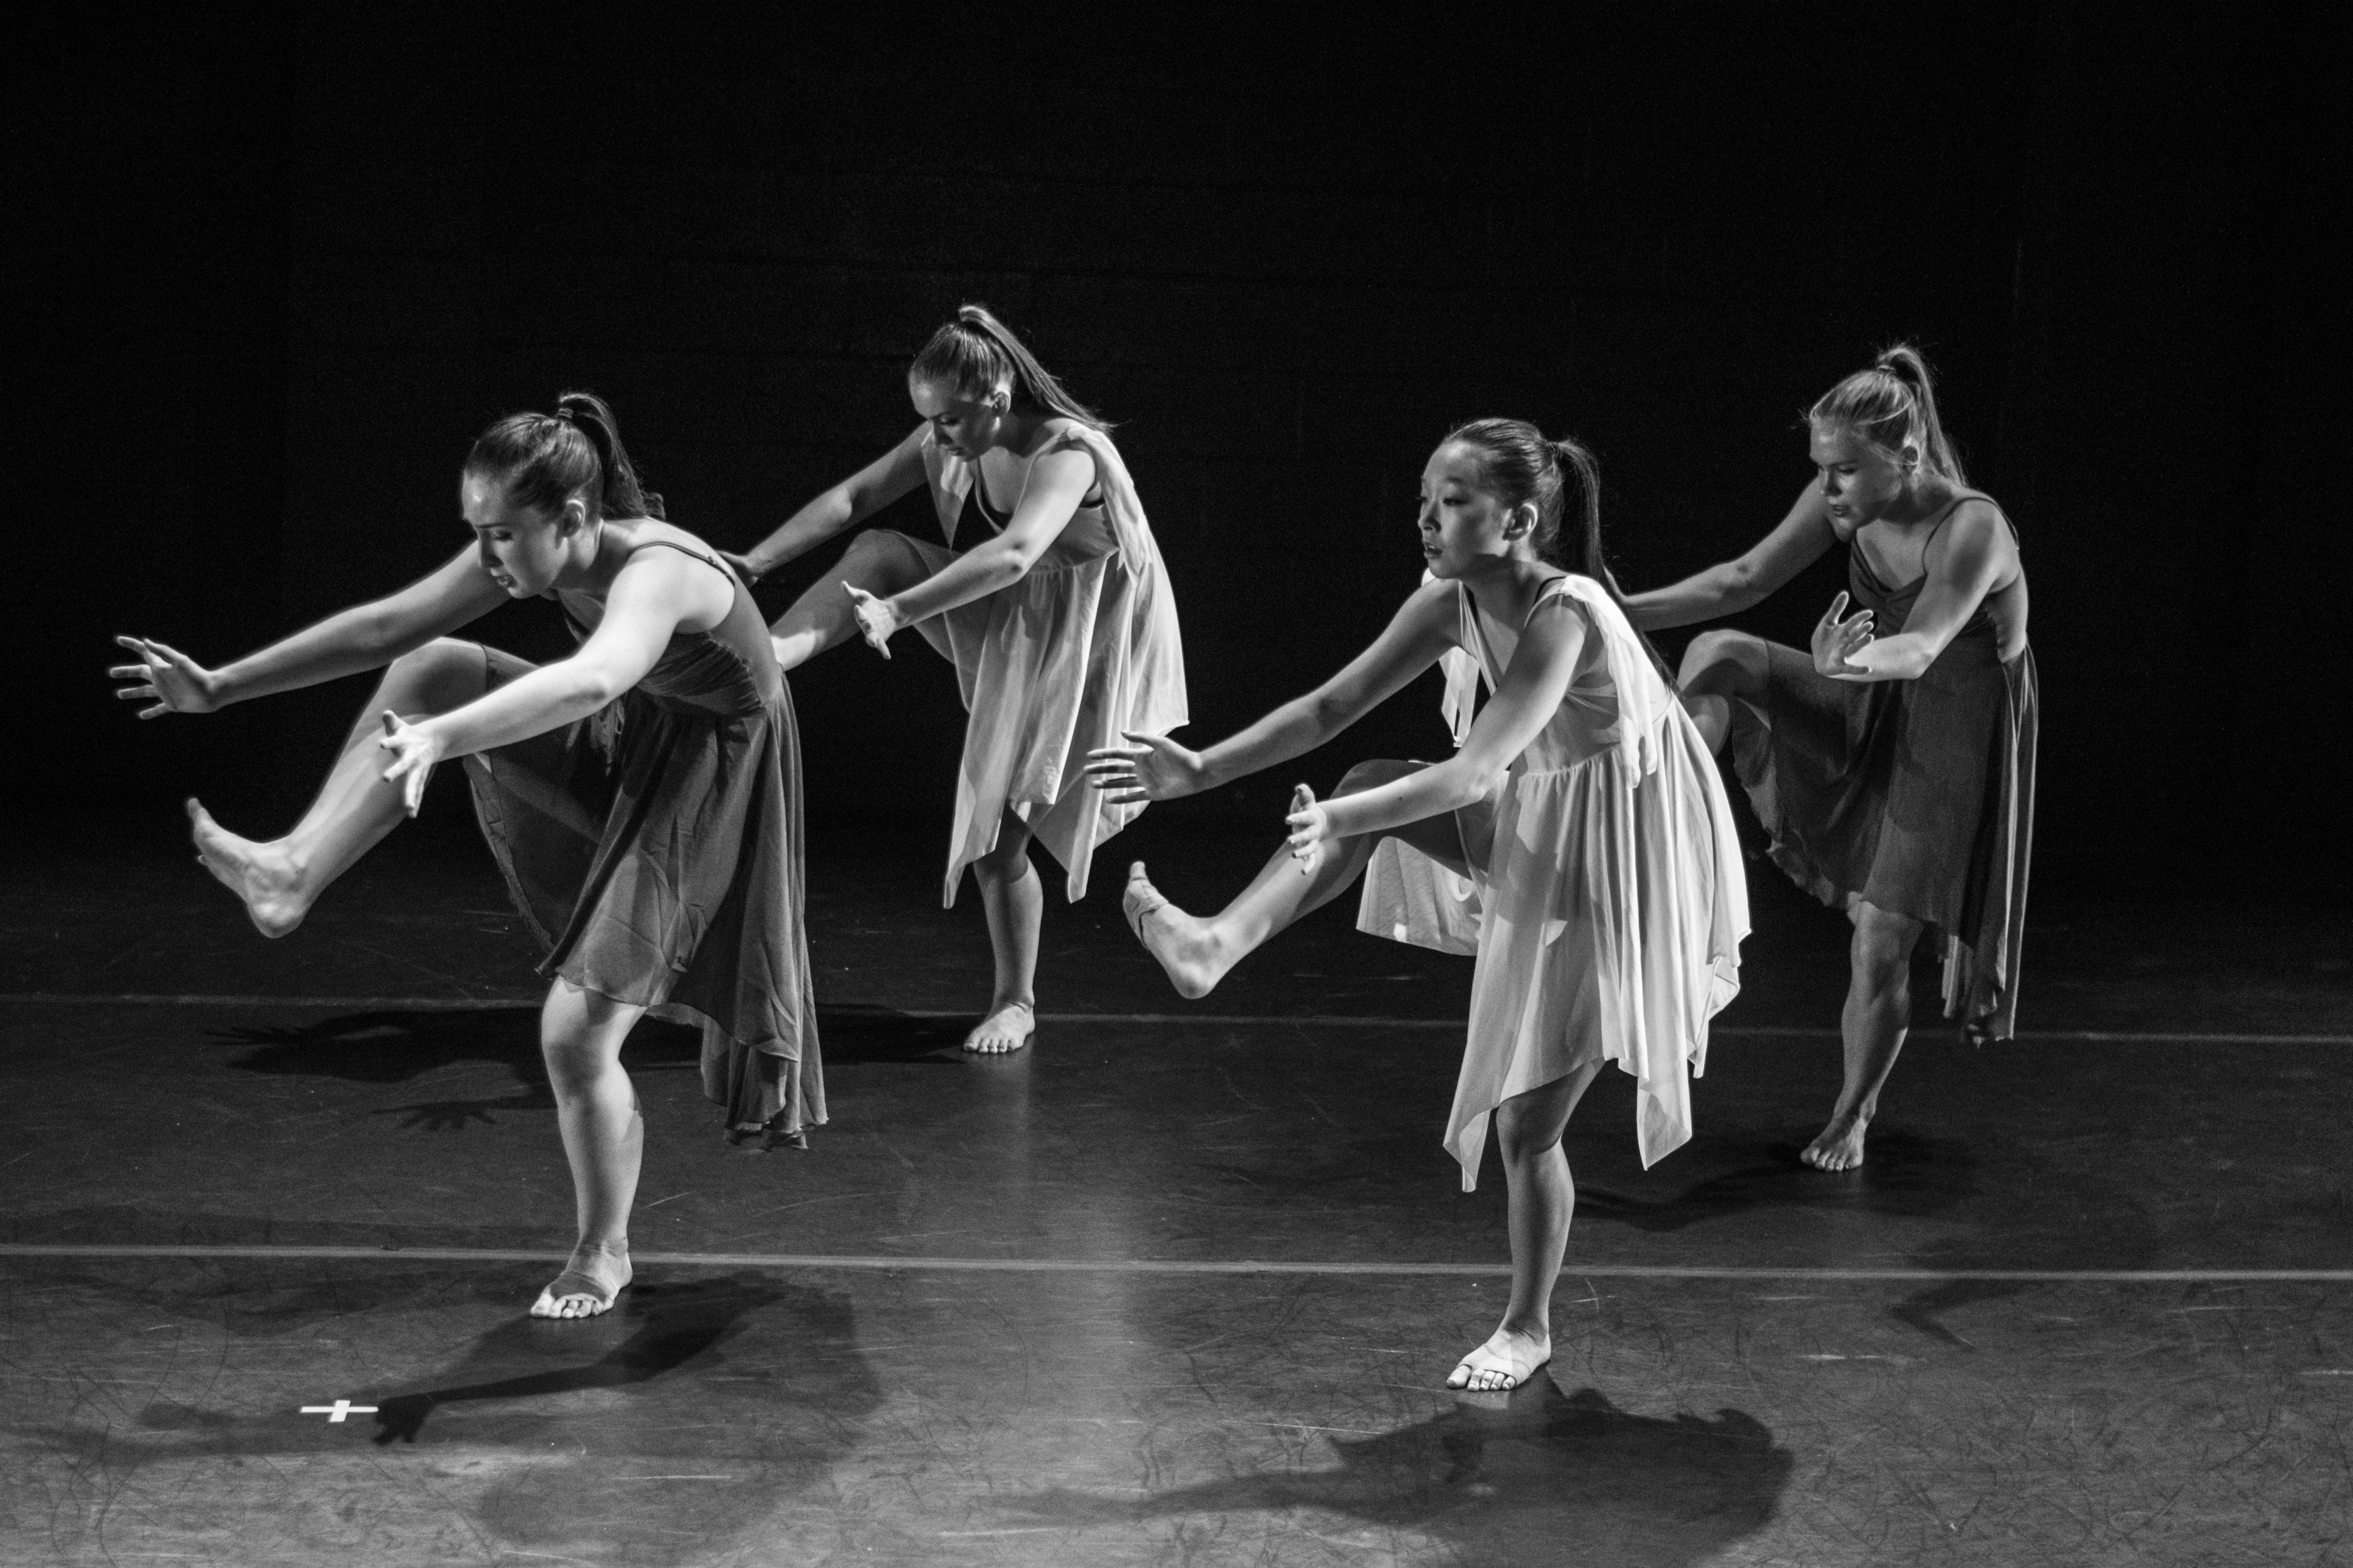 Black and white picture of dancers performing weird dance moves on a stage.